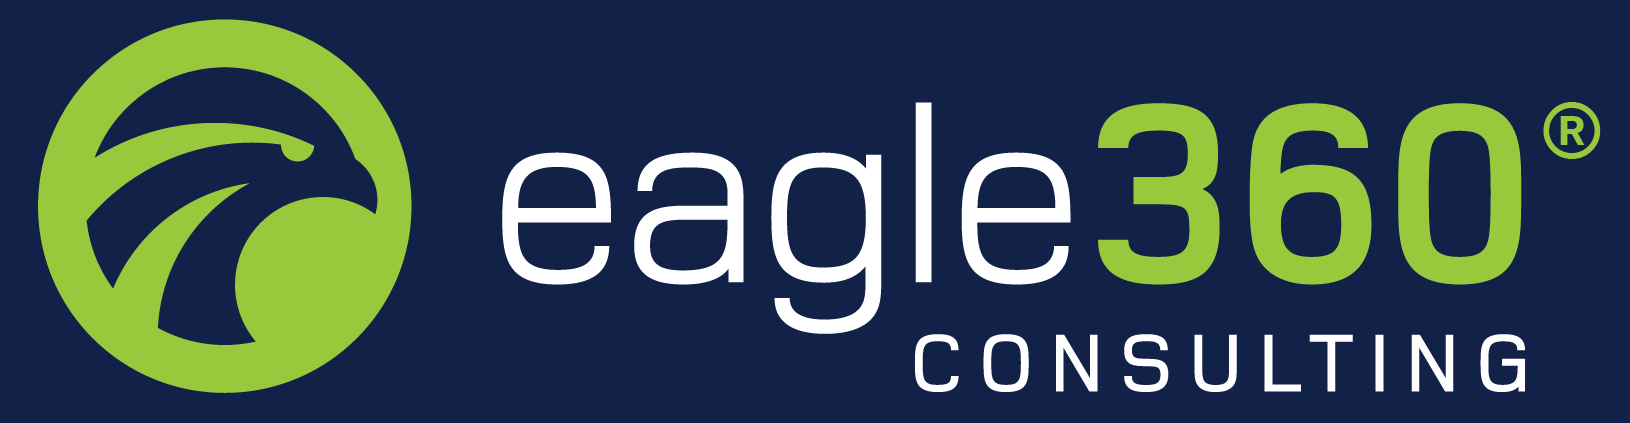 eagle360 consulting